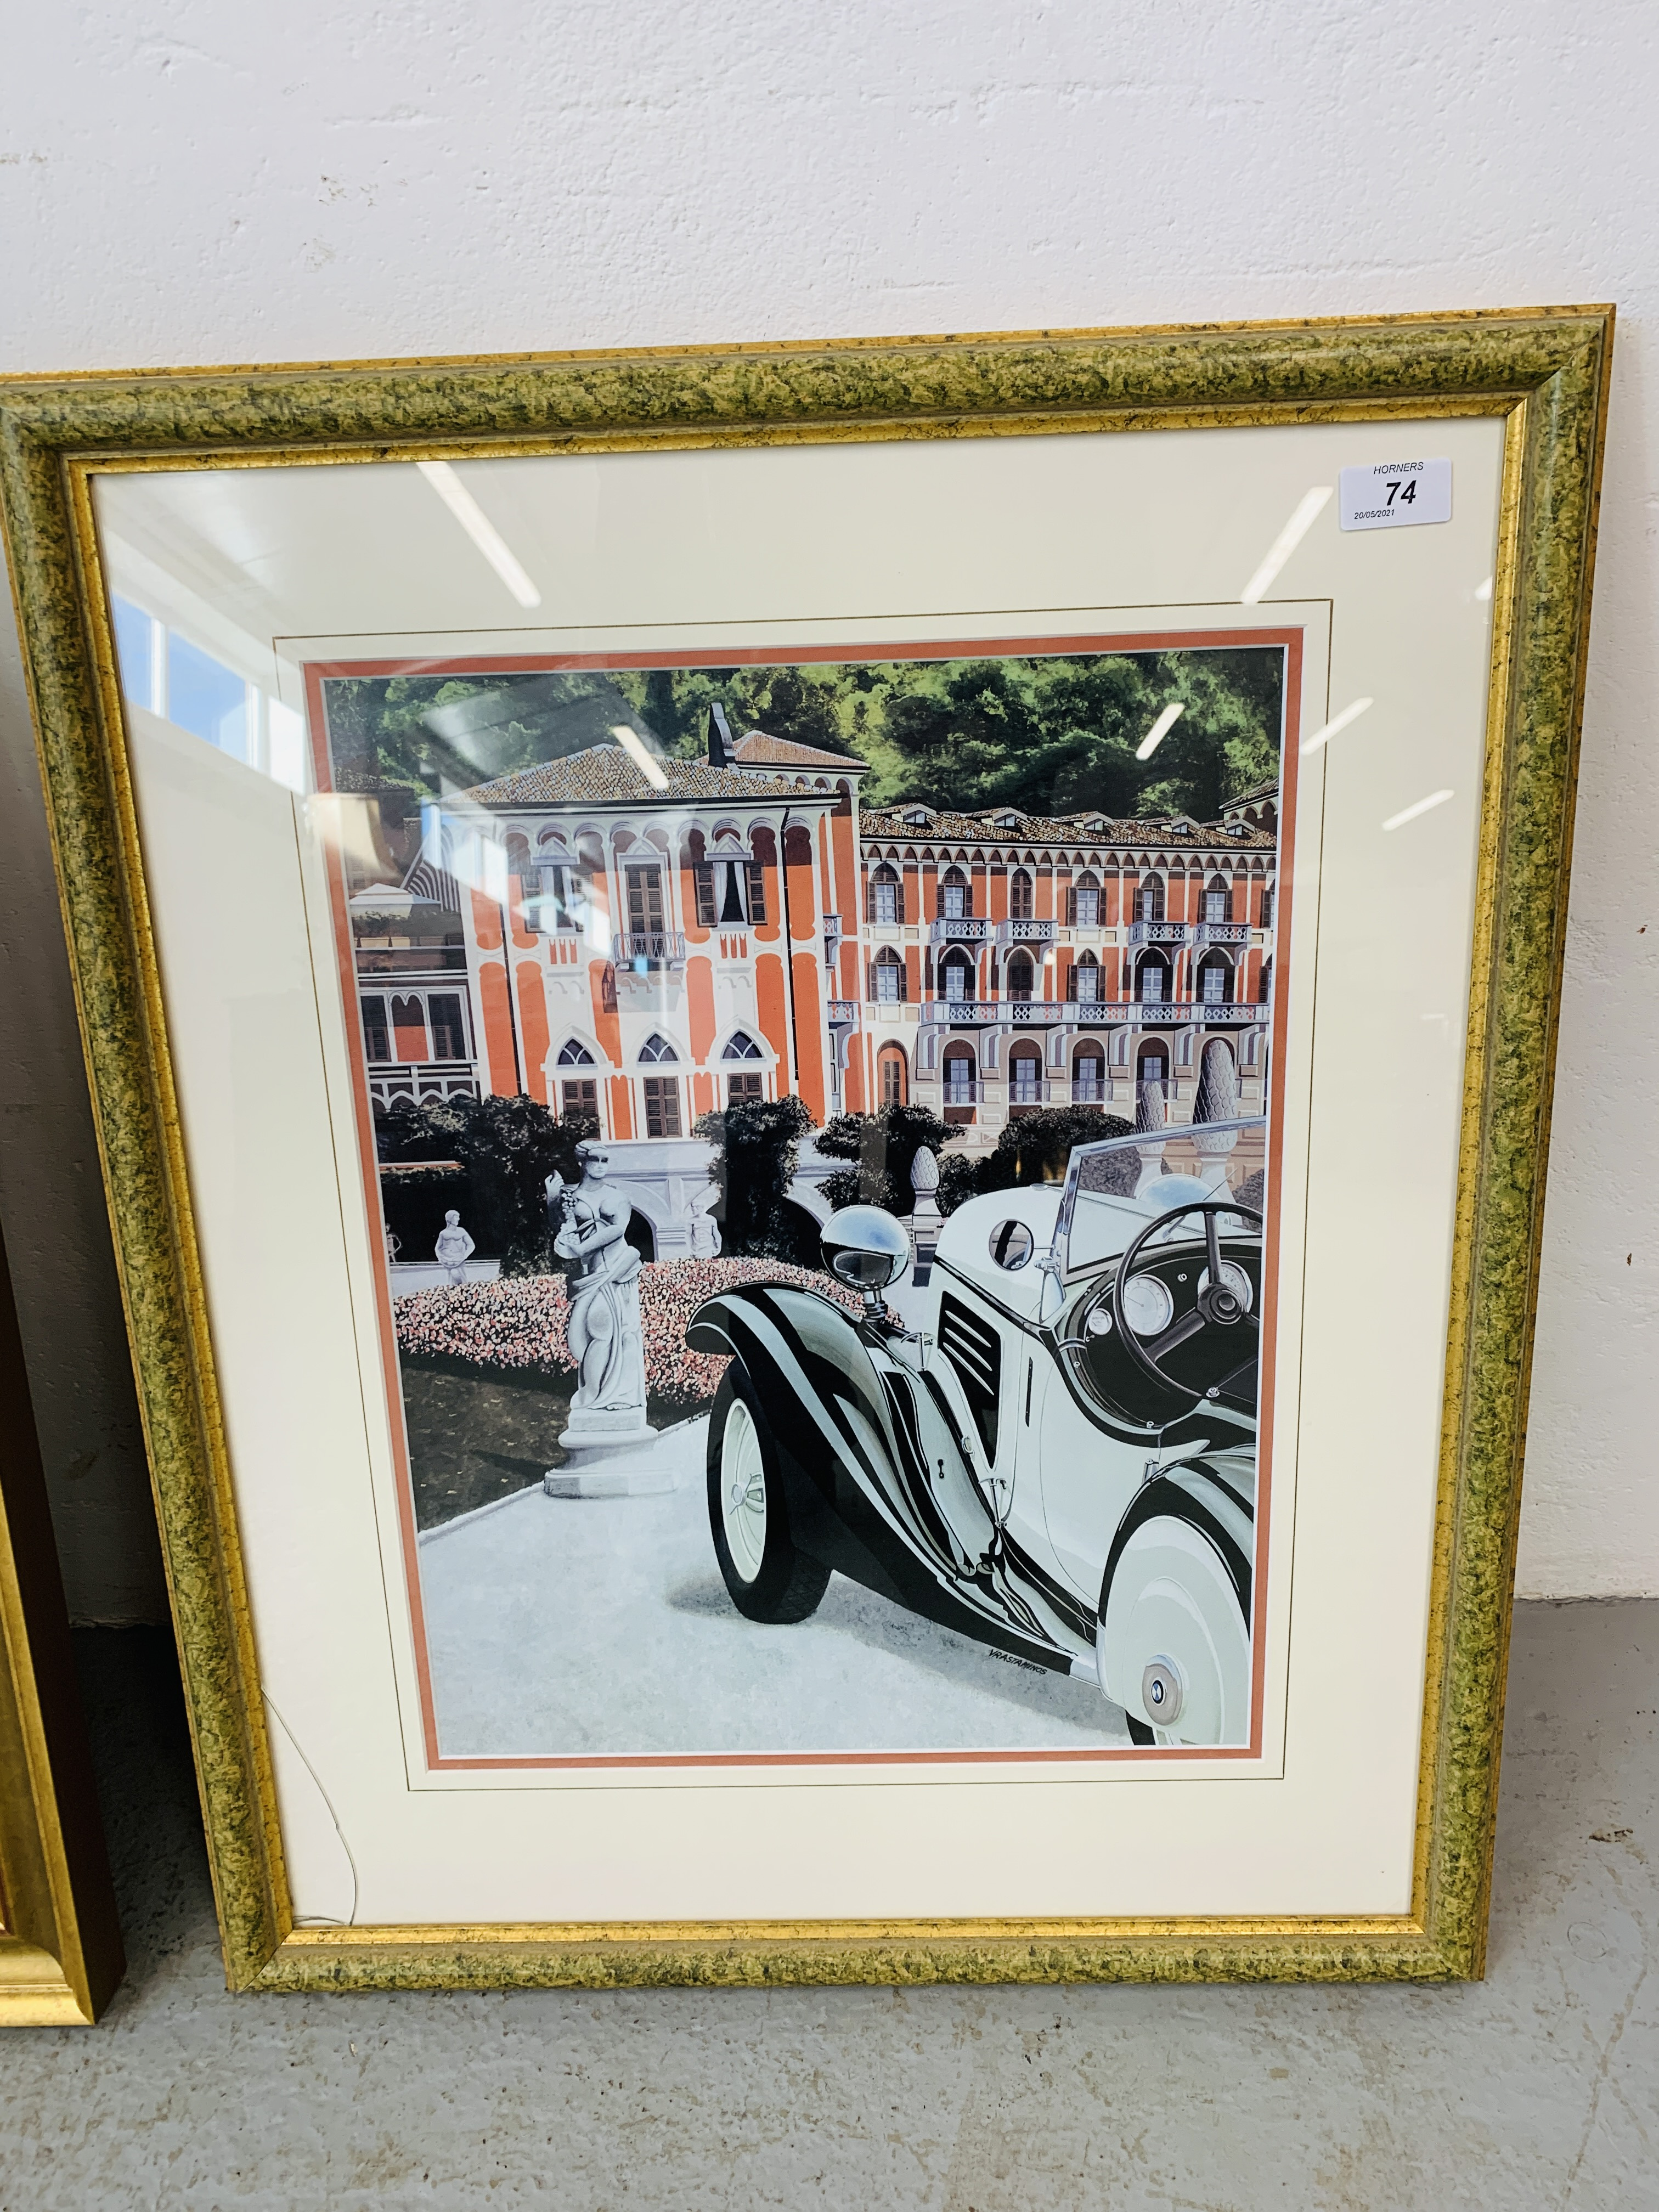 """A FRAMED AND MOUNTED ALAN FEARNLEY LTD EDITION PRINT """"A CERTAIN STYLE"""" 128/300 35. - Image 2 of 5"""